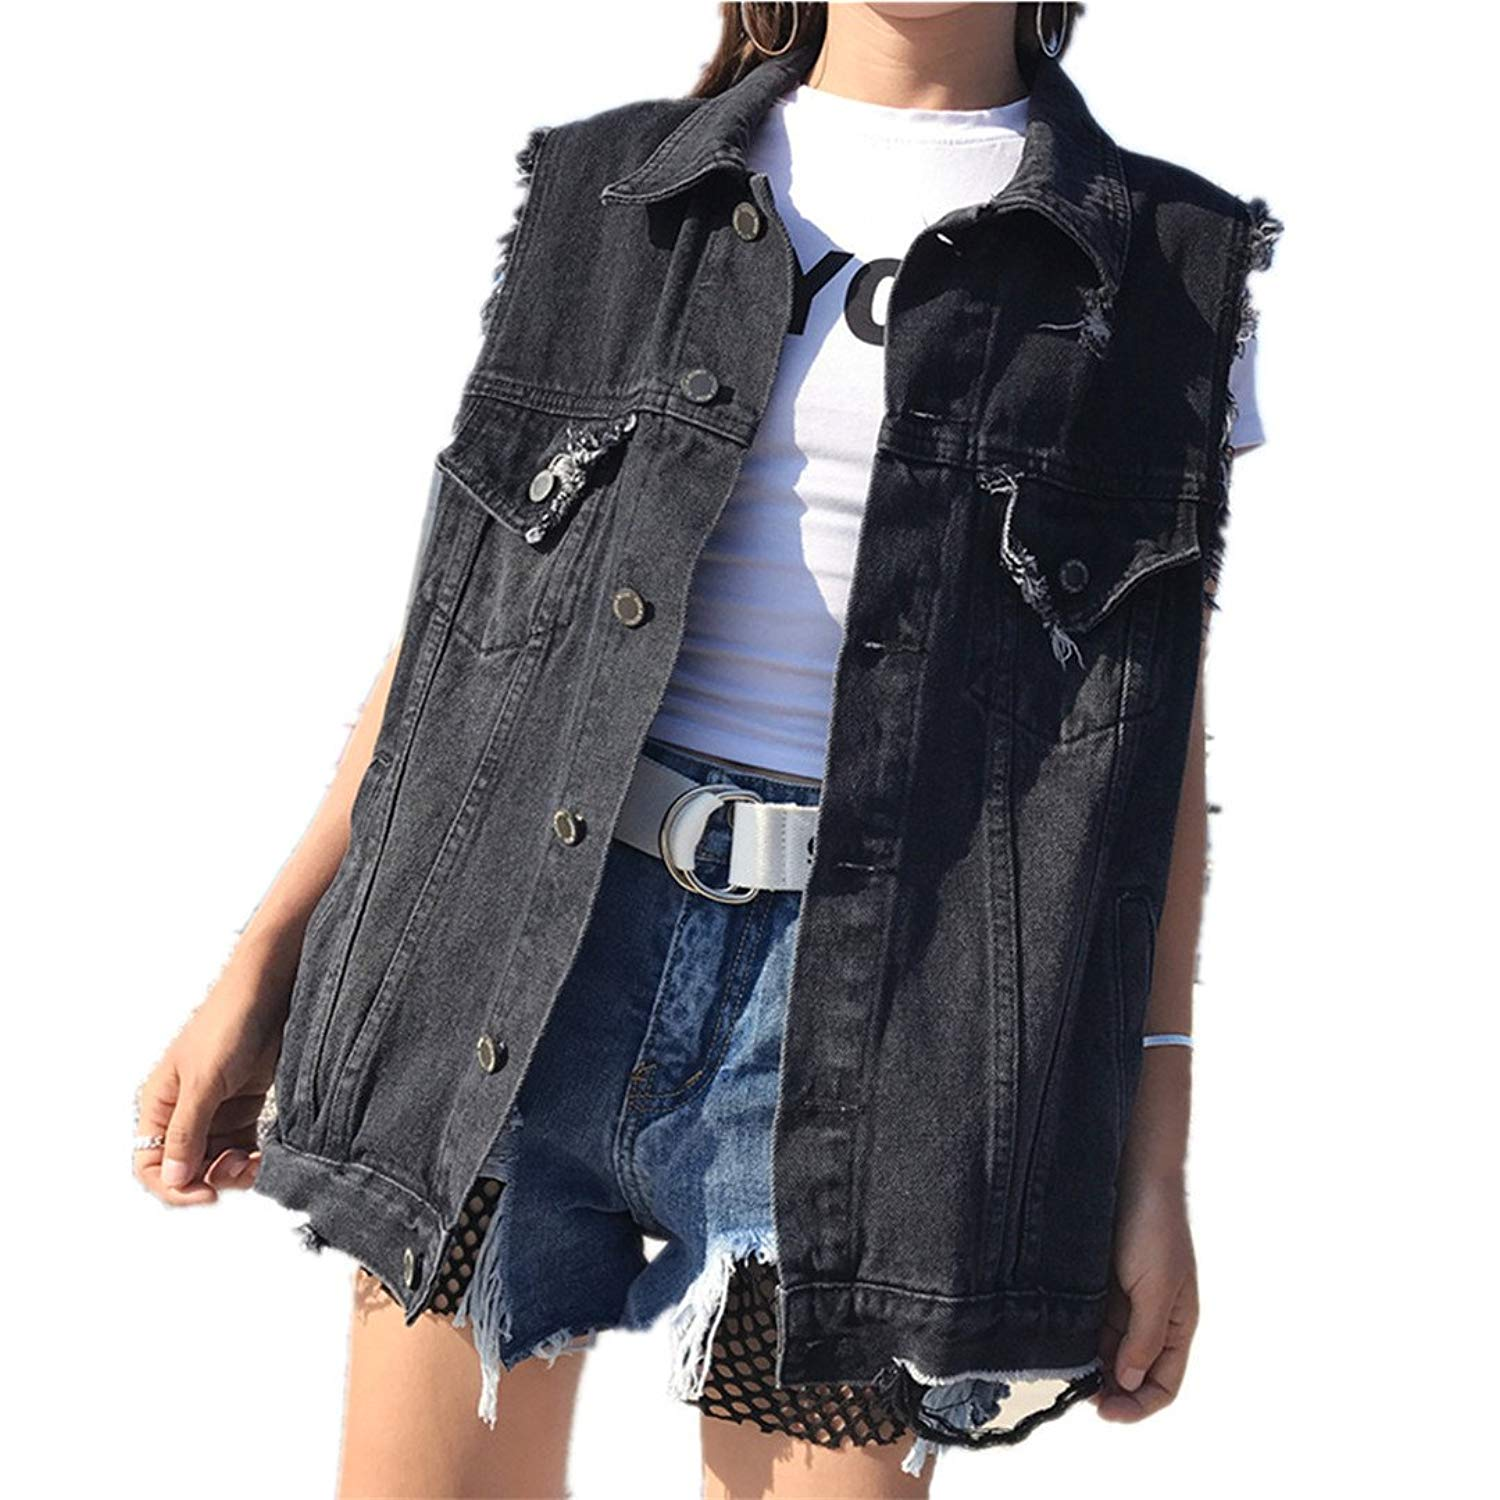 33740743ff3 Get Quotations · veste Fashionable Black Denim Vest Women s Sleeveless Jeans  Jacket Casual Women s Vest Sleeveless Denim Jacket